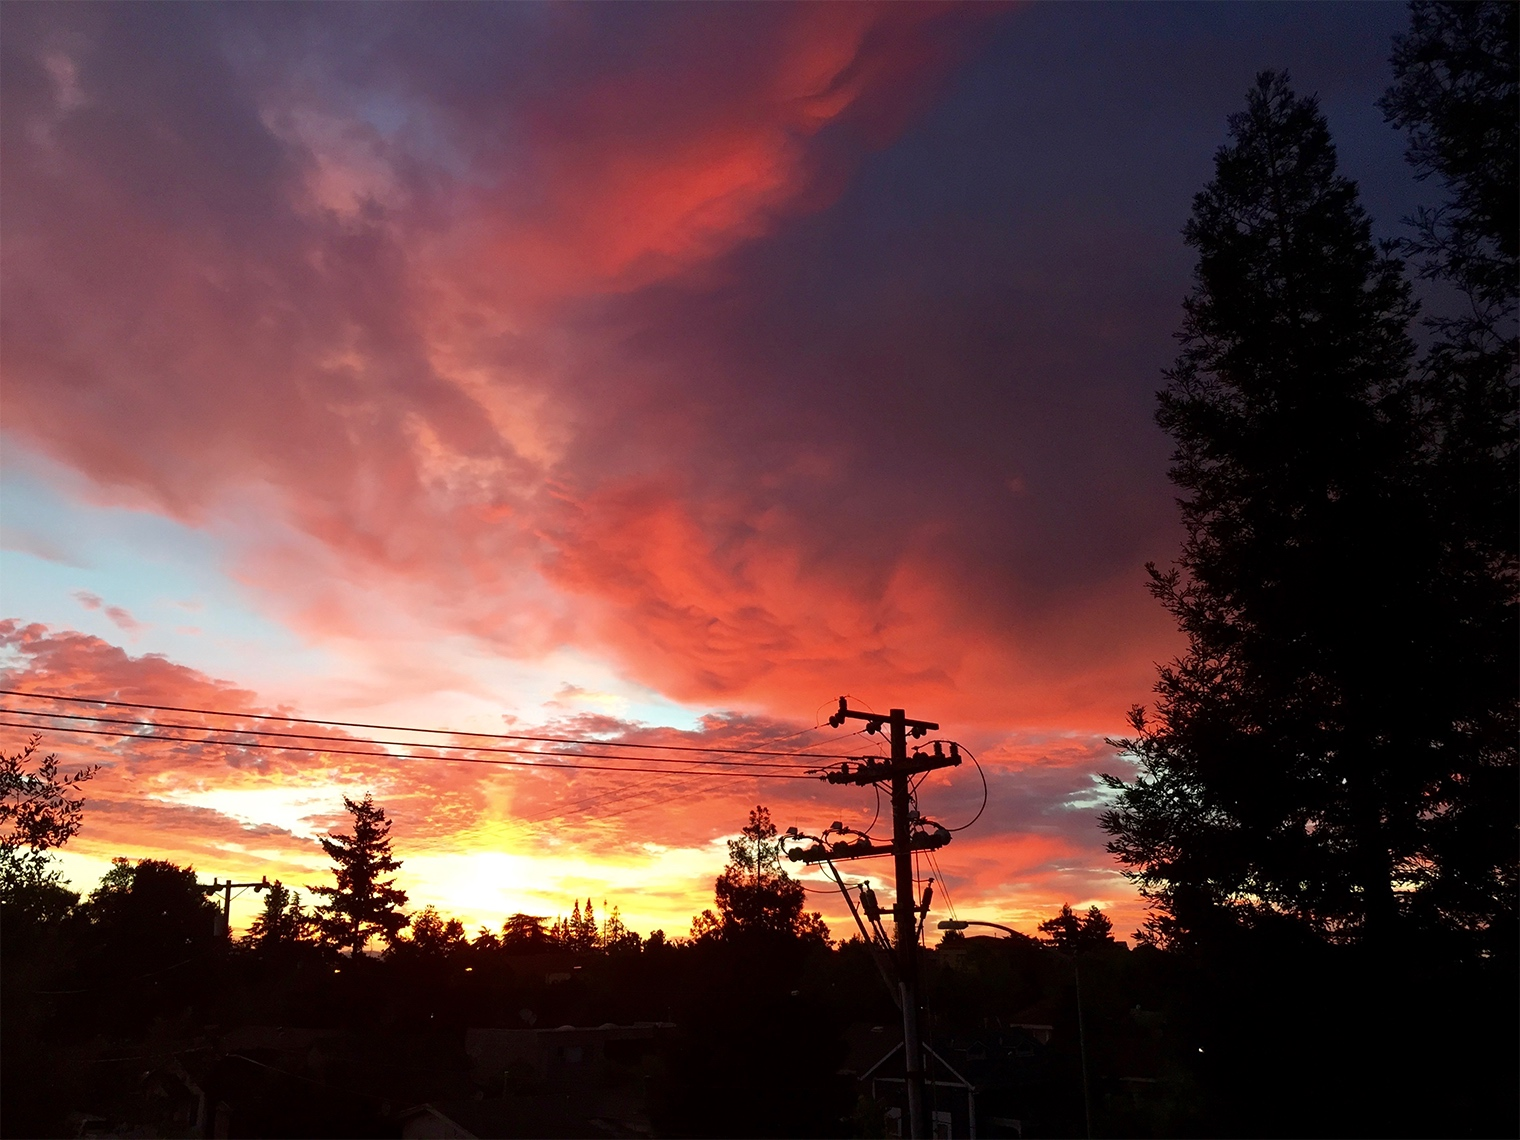 Sunset in Campbell, California